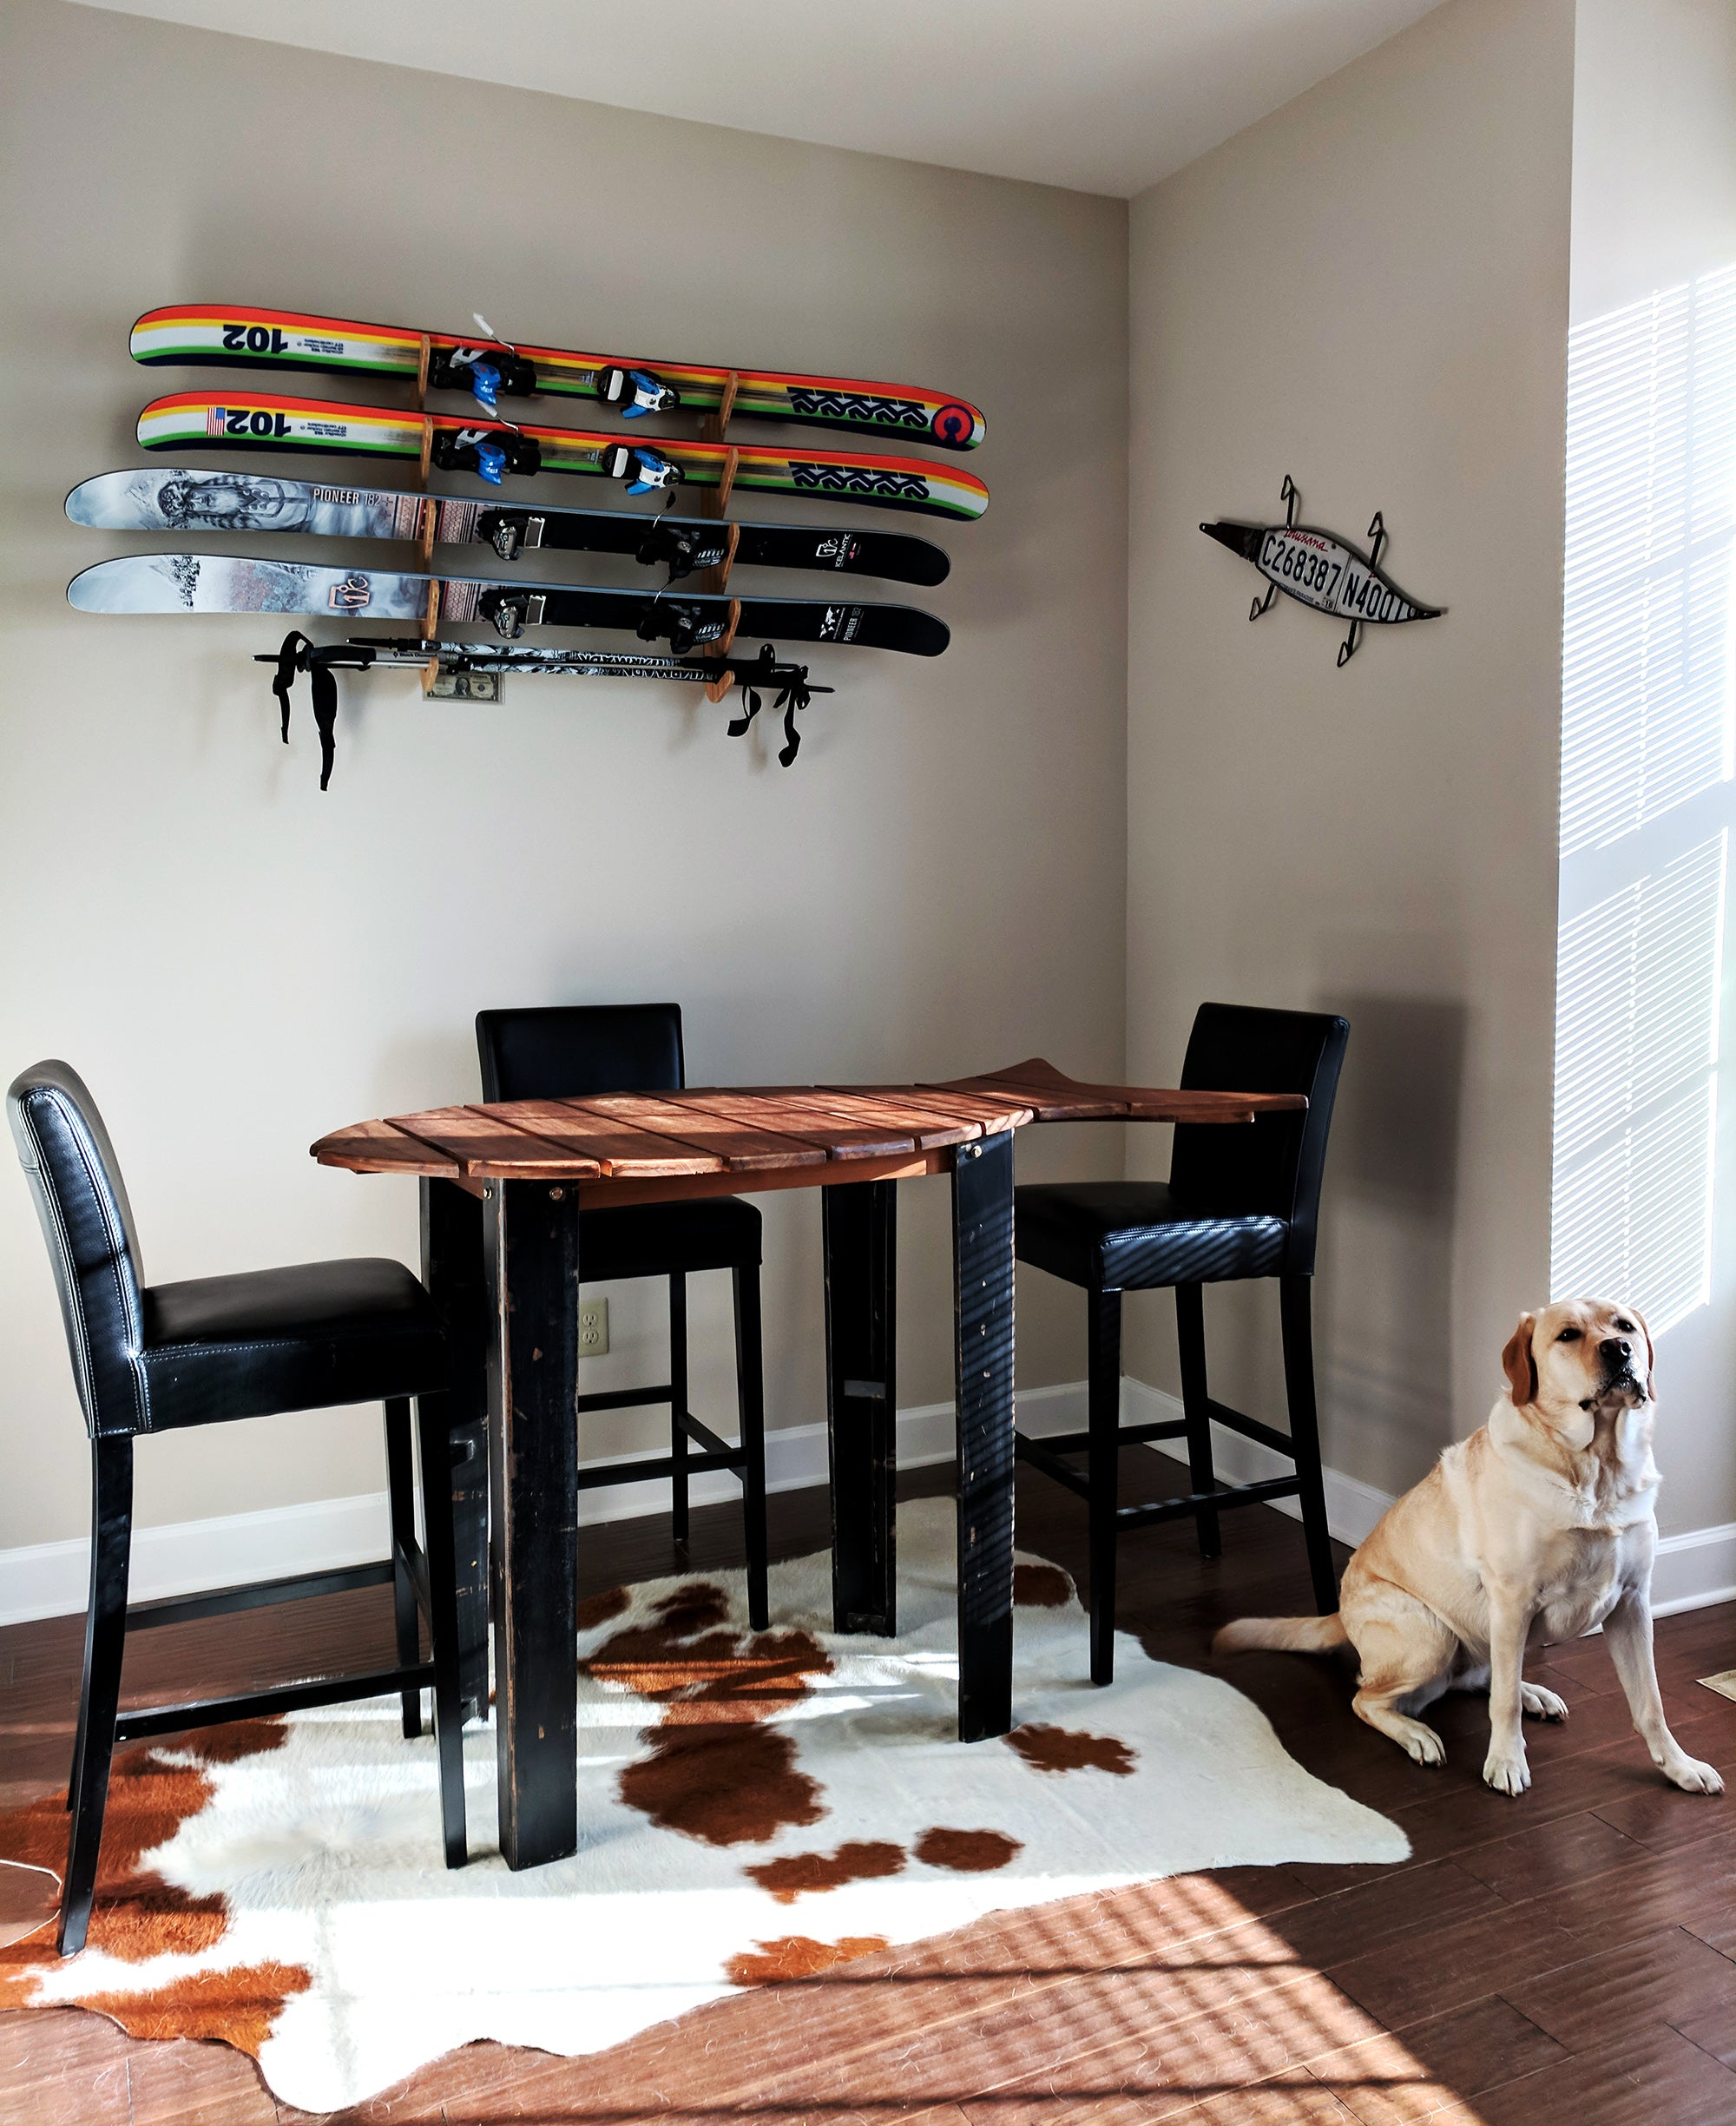 Indoor Ski Display - Ski Art Home Decor